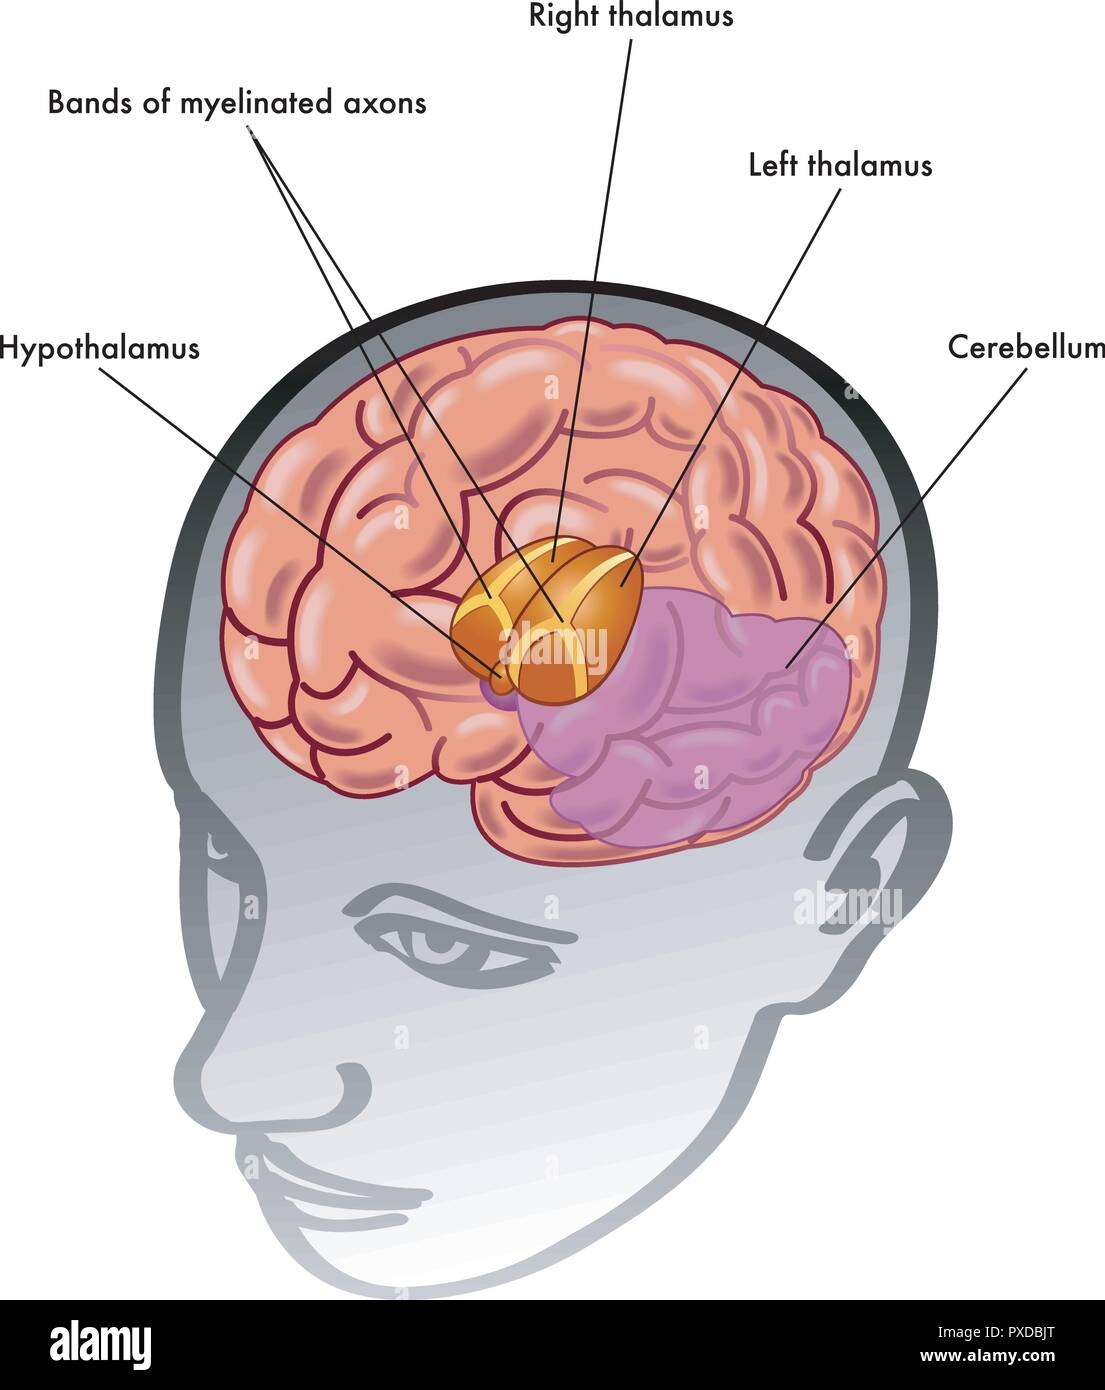 medical illustration of the thalamus and hypothalamus and their position inside the head - Stock Image